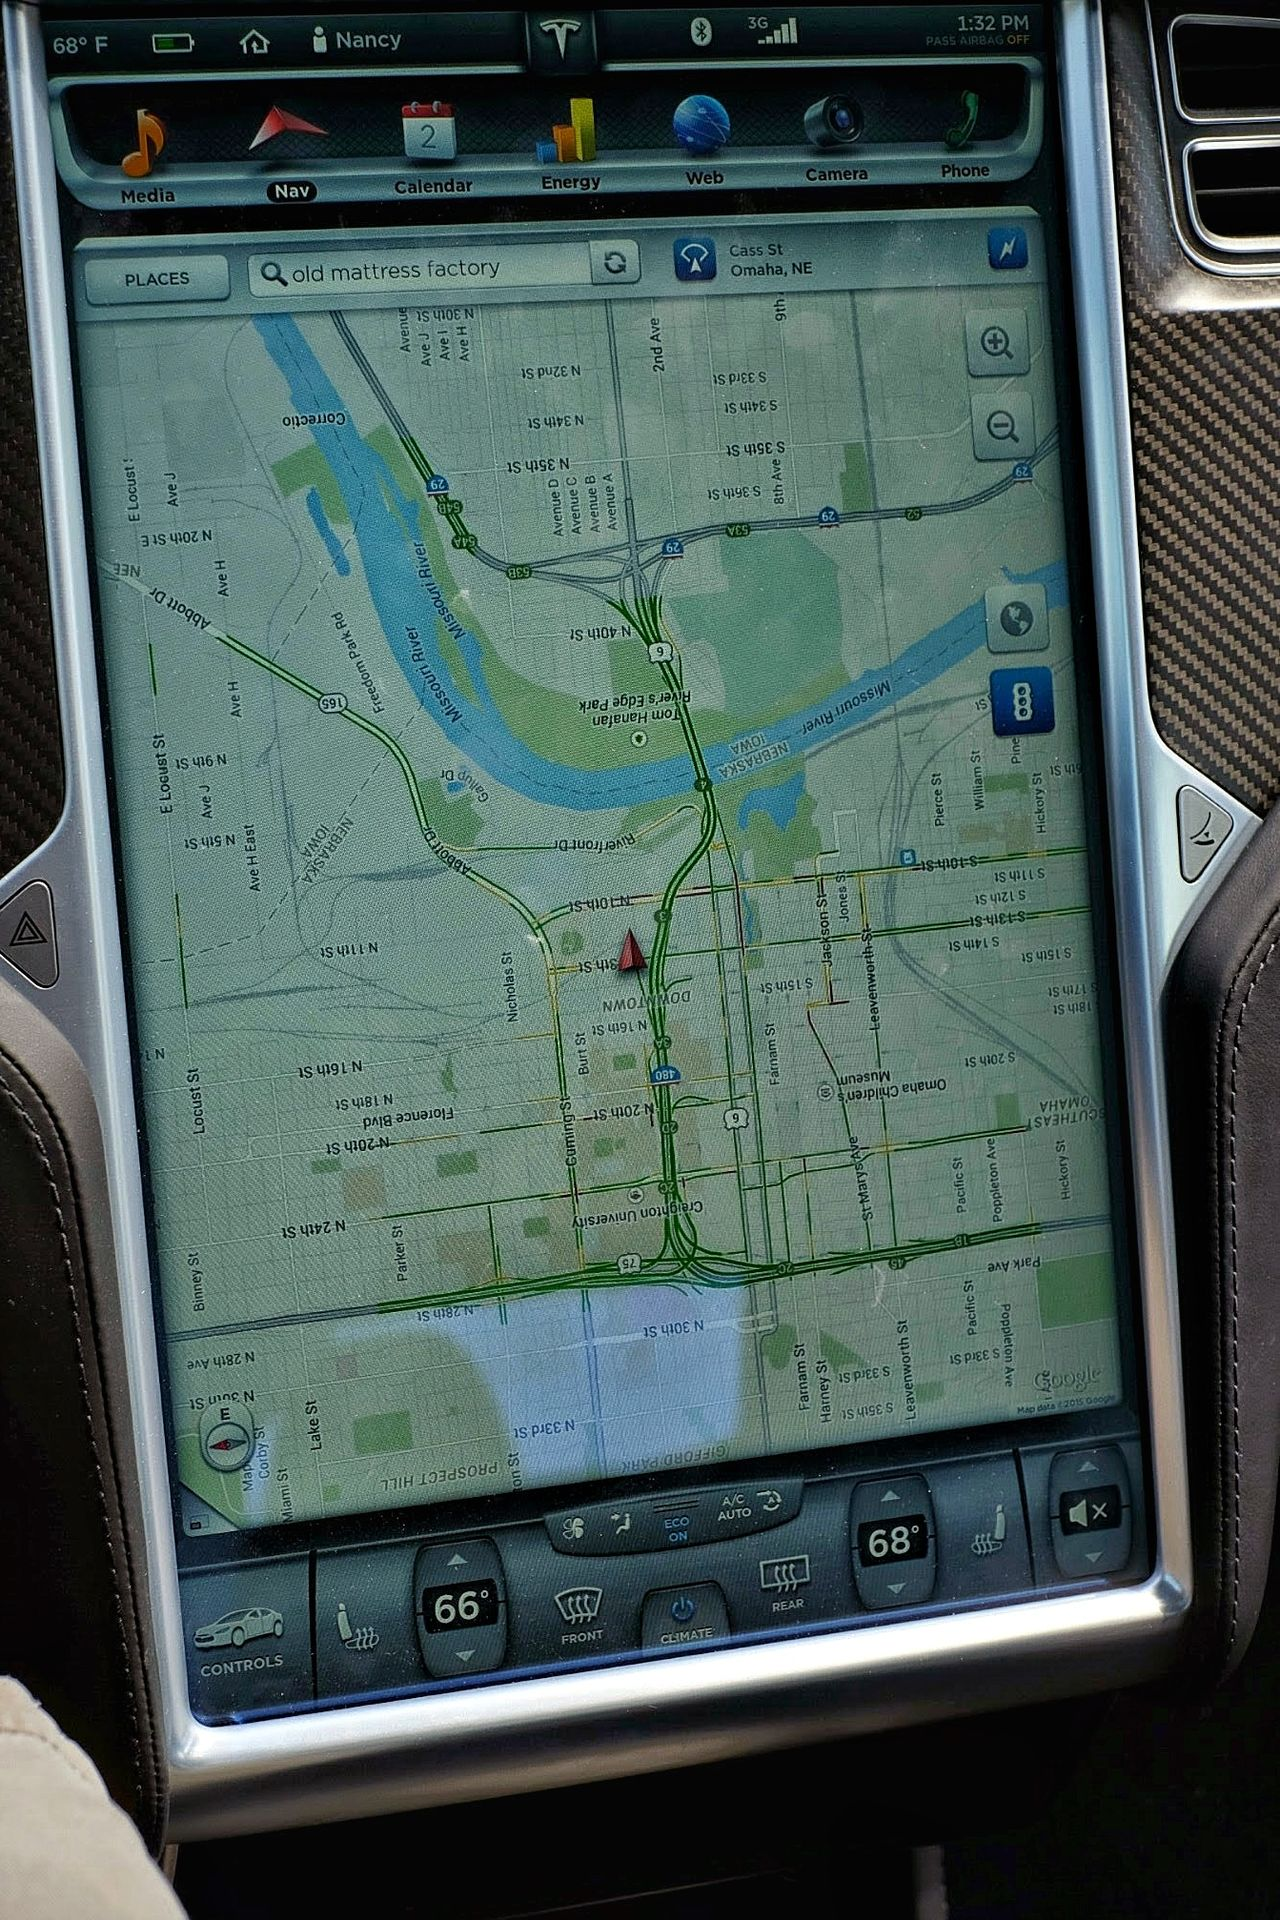 meinAutomoment : Tesla Motors P85D Backgrounds Car Interior Close-up Dashboard Day Detail Electric Vehicle Full Frame Interface Land Vehicle Map Mode Of Transport Navigation No People Part Of Screen Technology Tesla Motors Test Drive Touchscreen